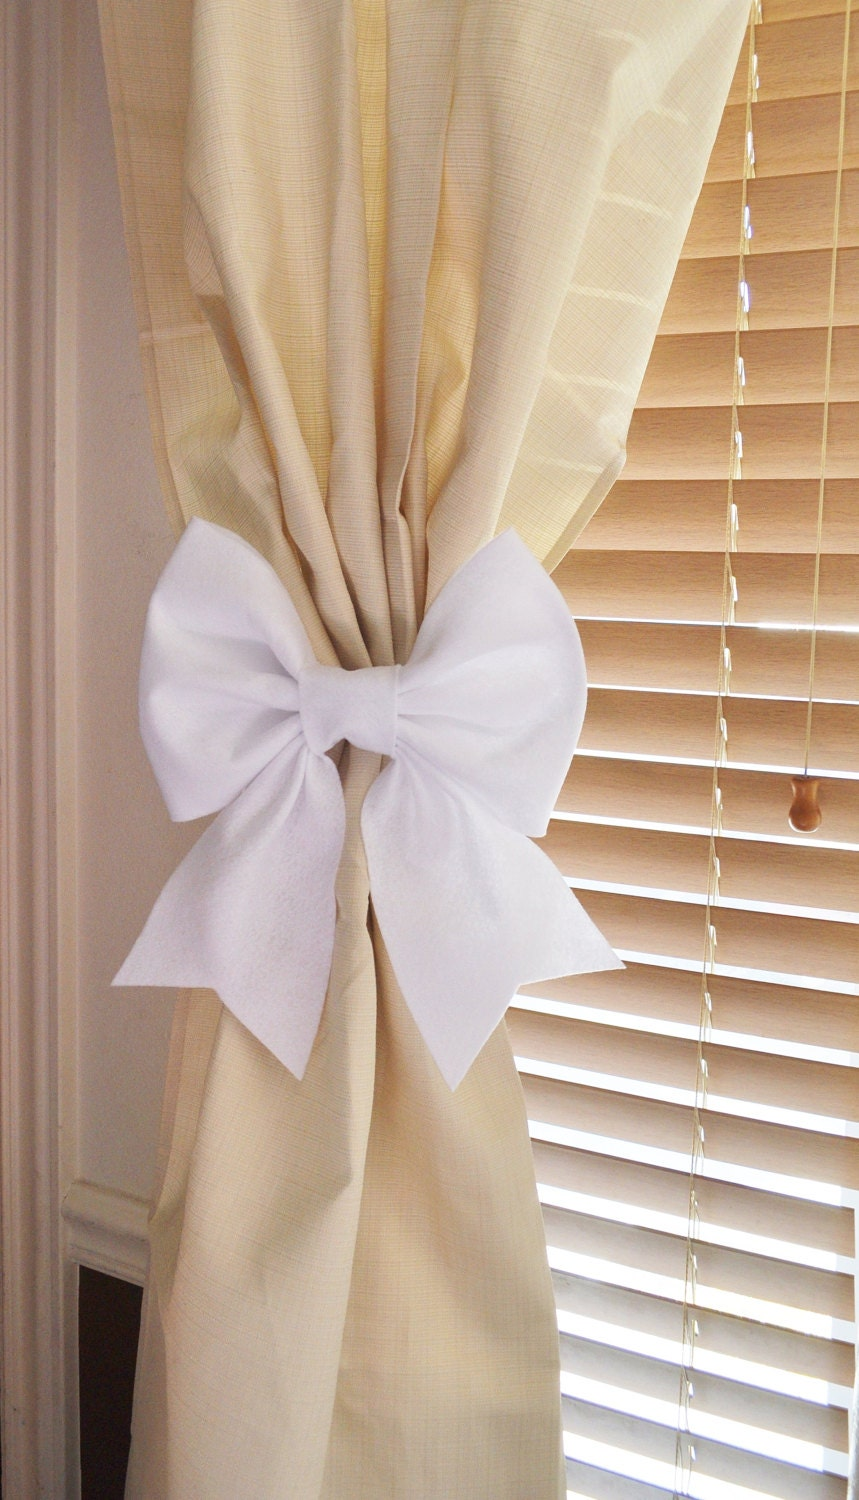 White Bow Curtain Tie Backs Two Decorative Tiebacks By